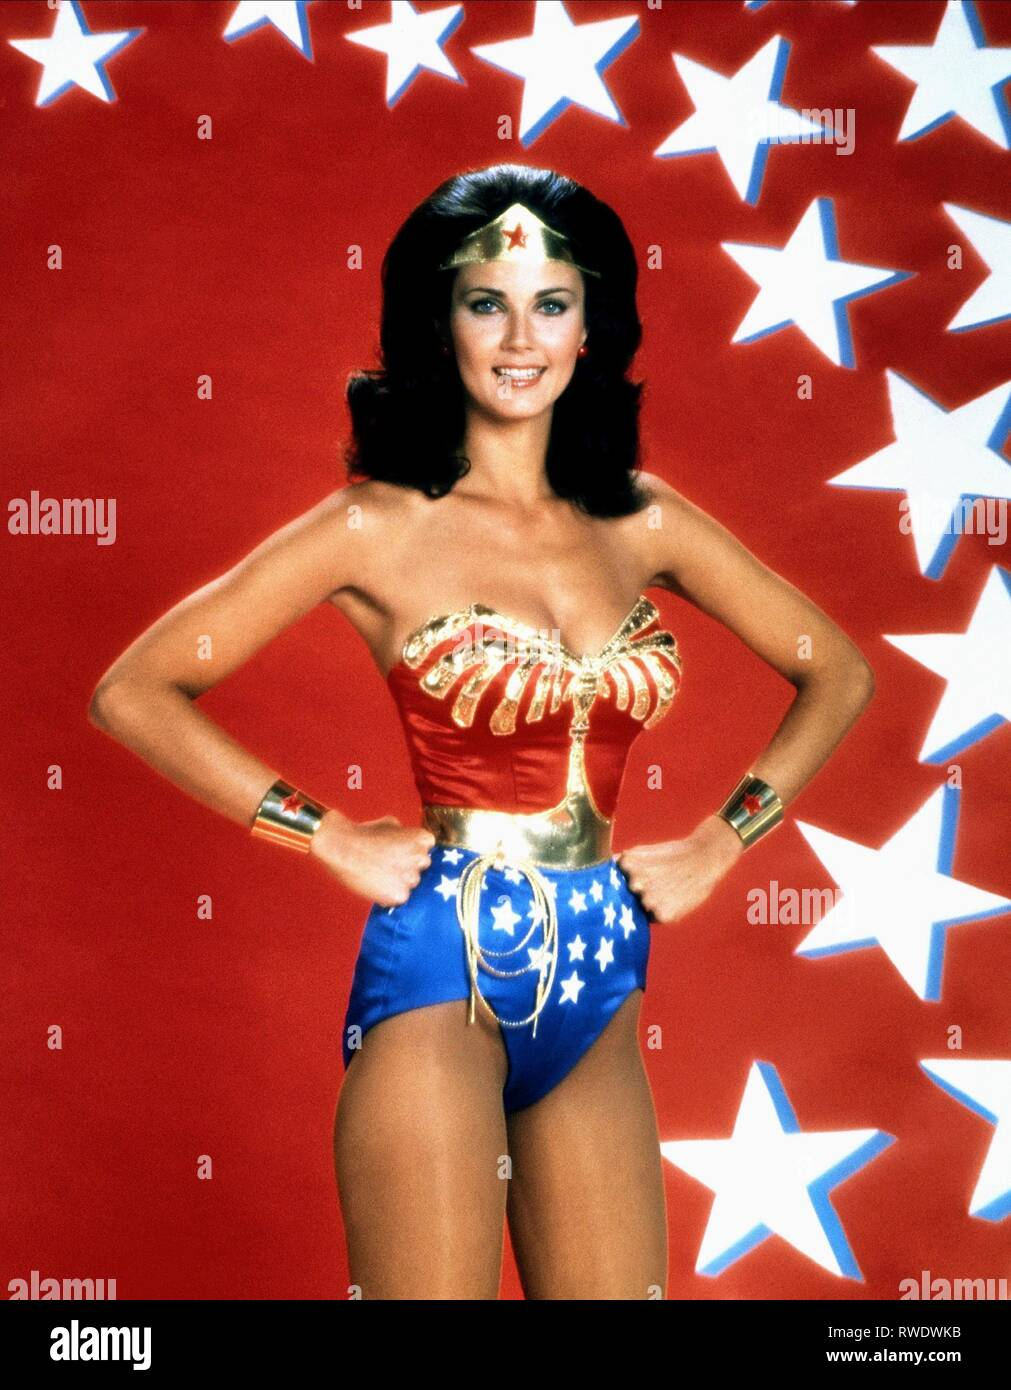 LYNDA CARTER, WONDER WOMAN, 1975 - Stock Image